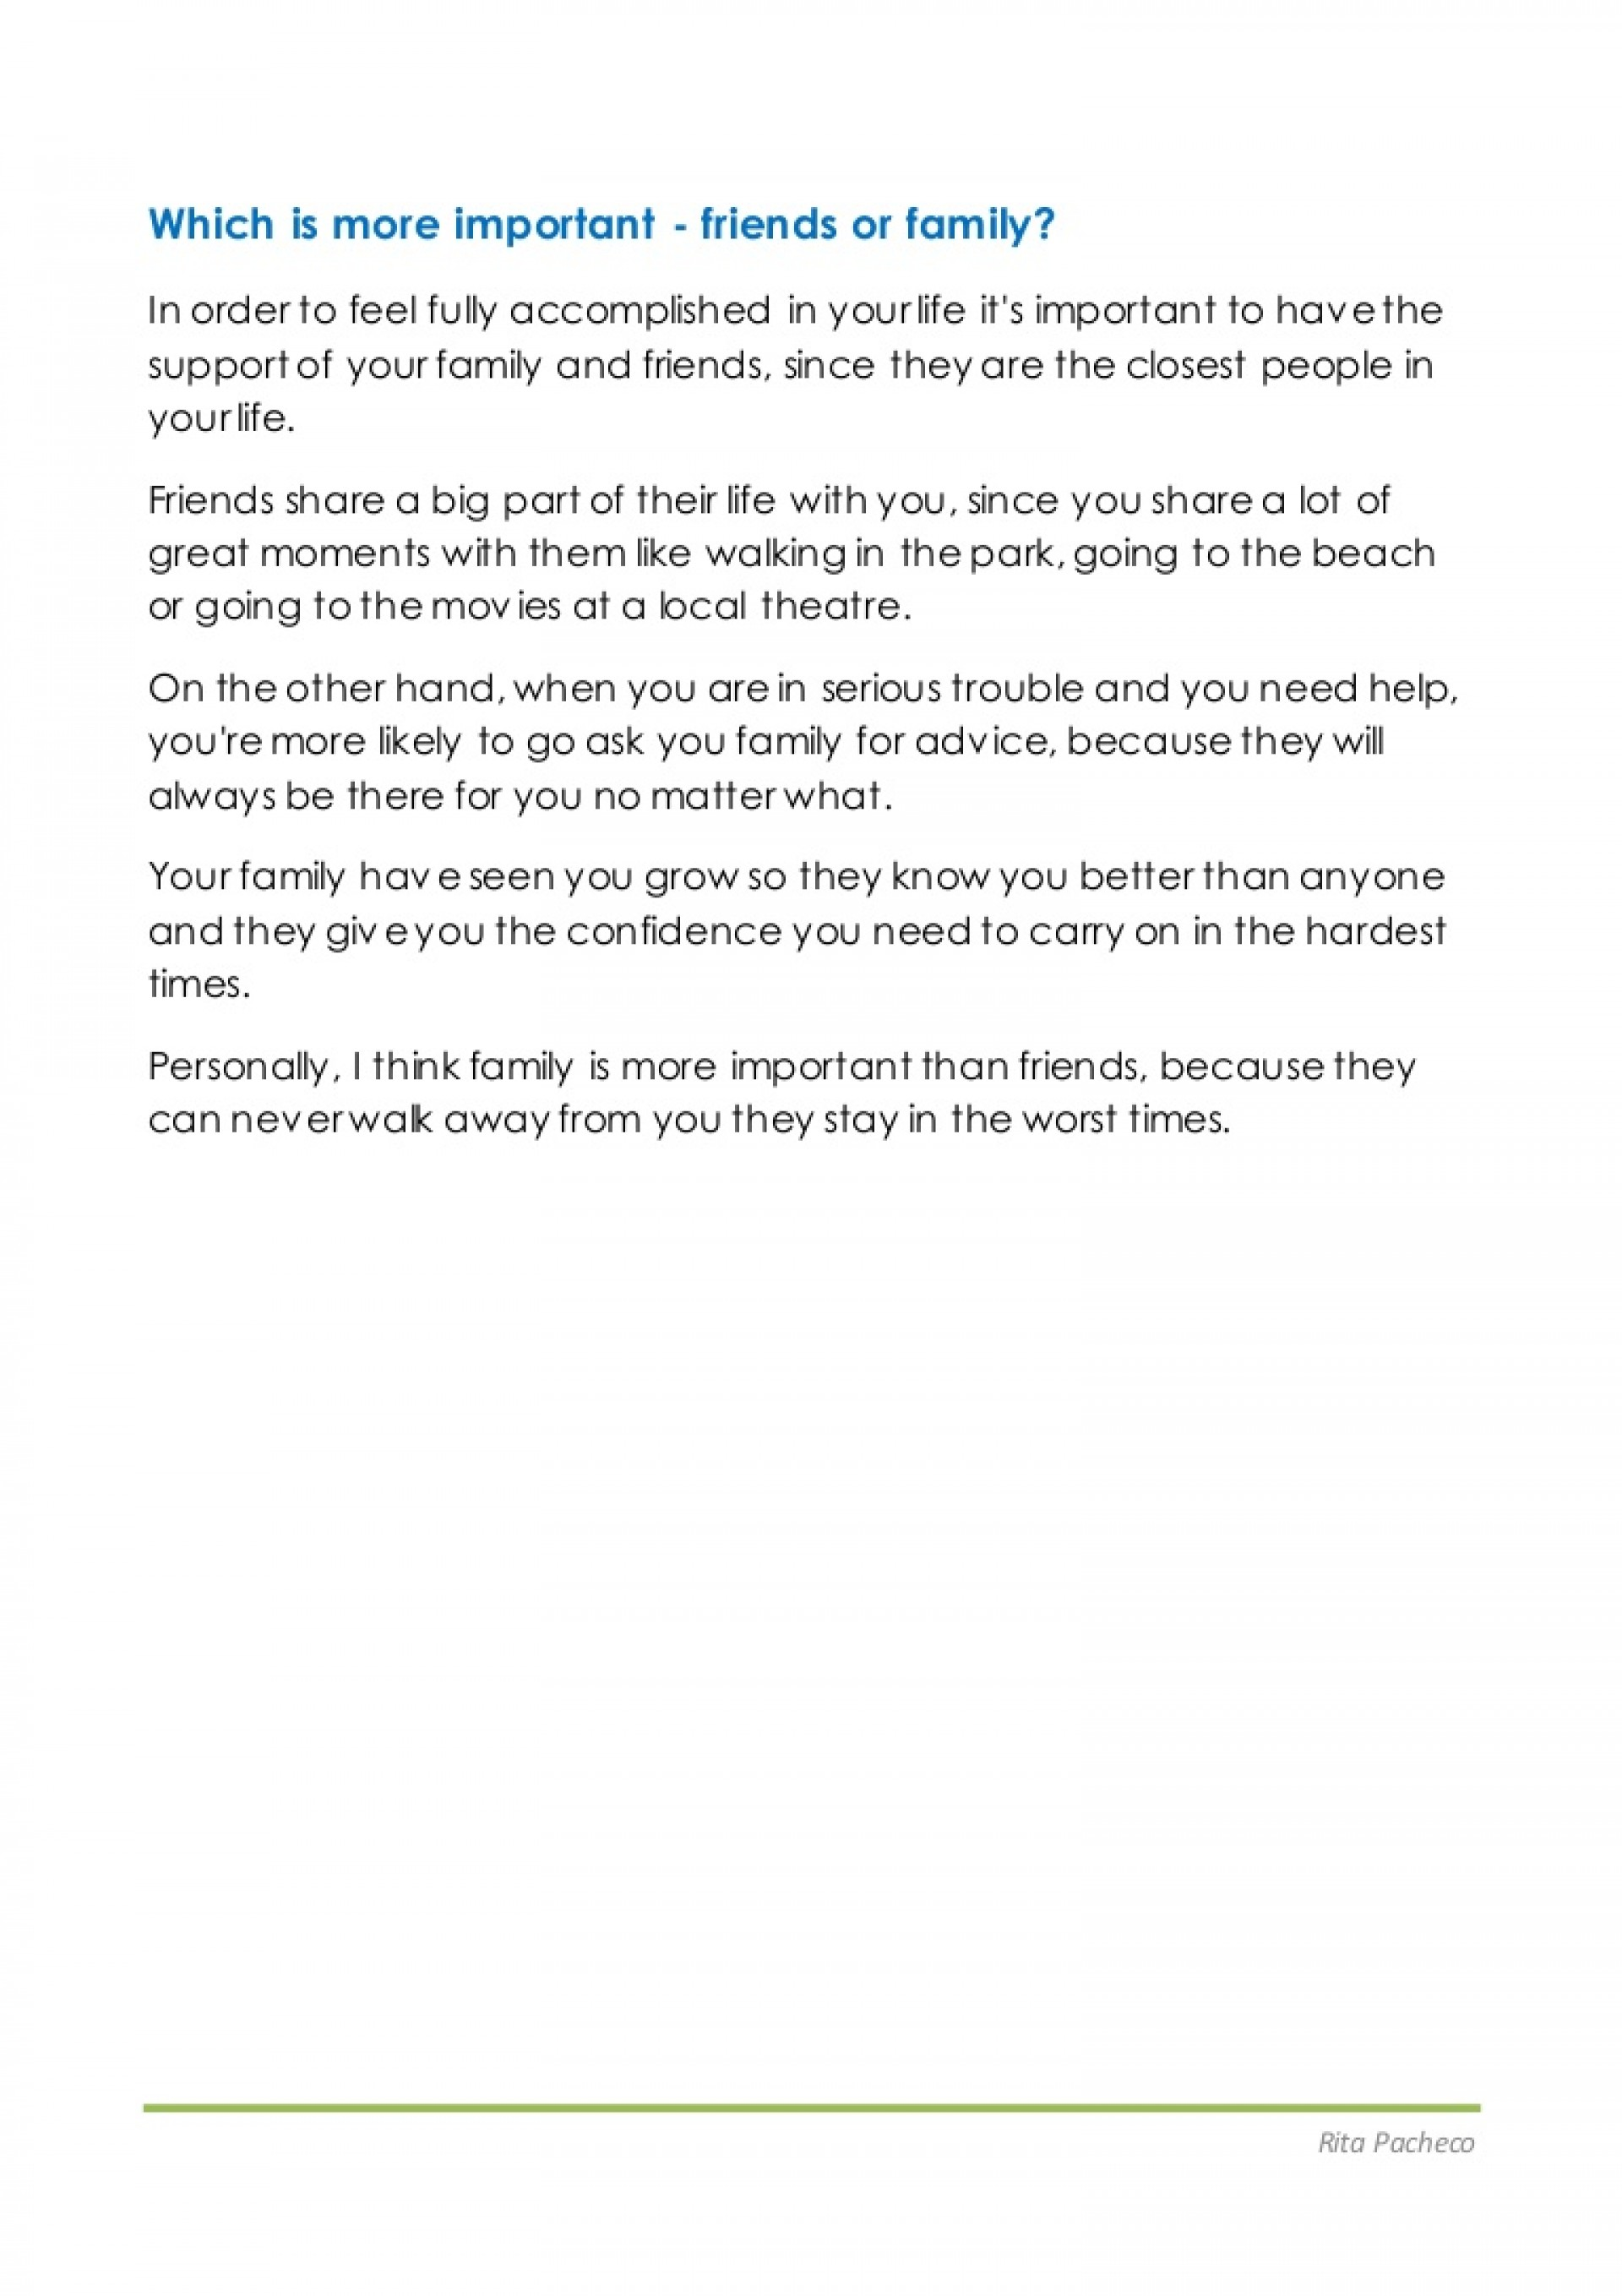 003 Essay Example Essayfriendsvsfamily Conversion Gate01 Thumbnail About Singular Friends Friendship In Tamil Over Story 1920